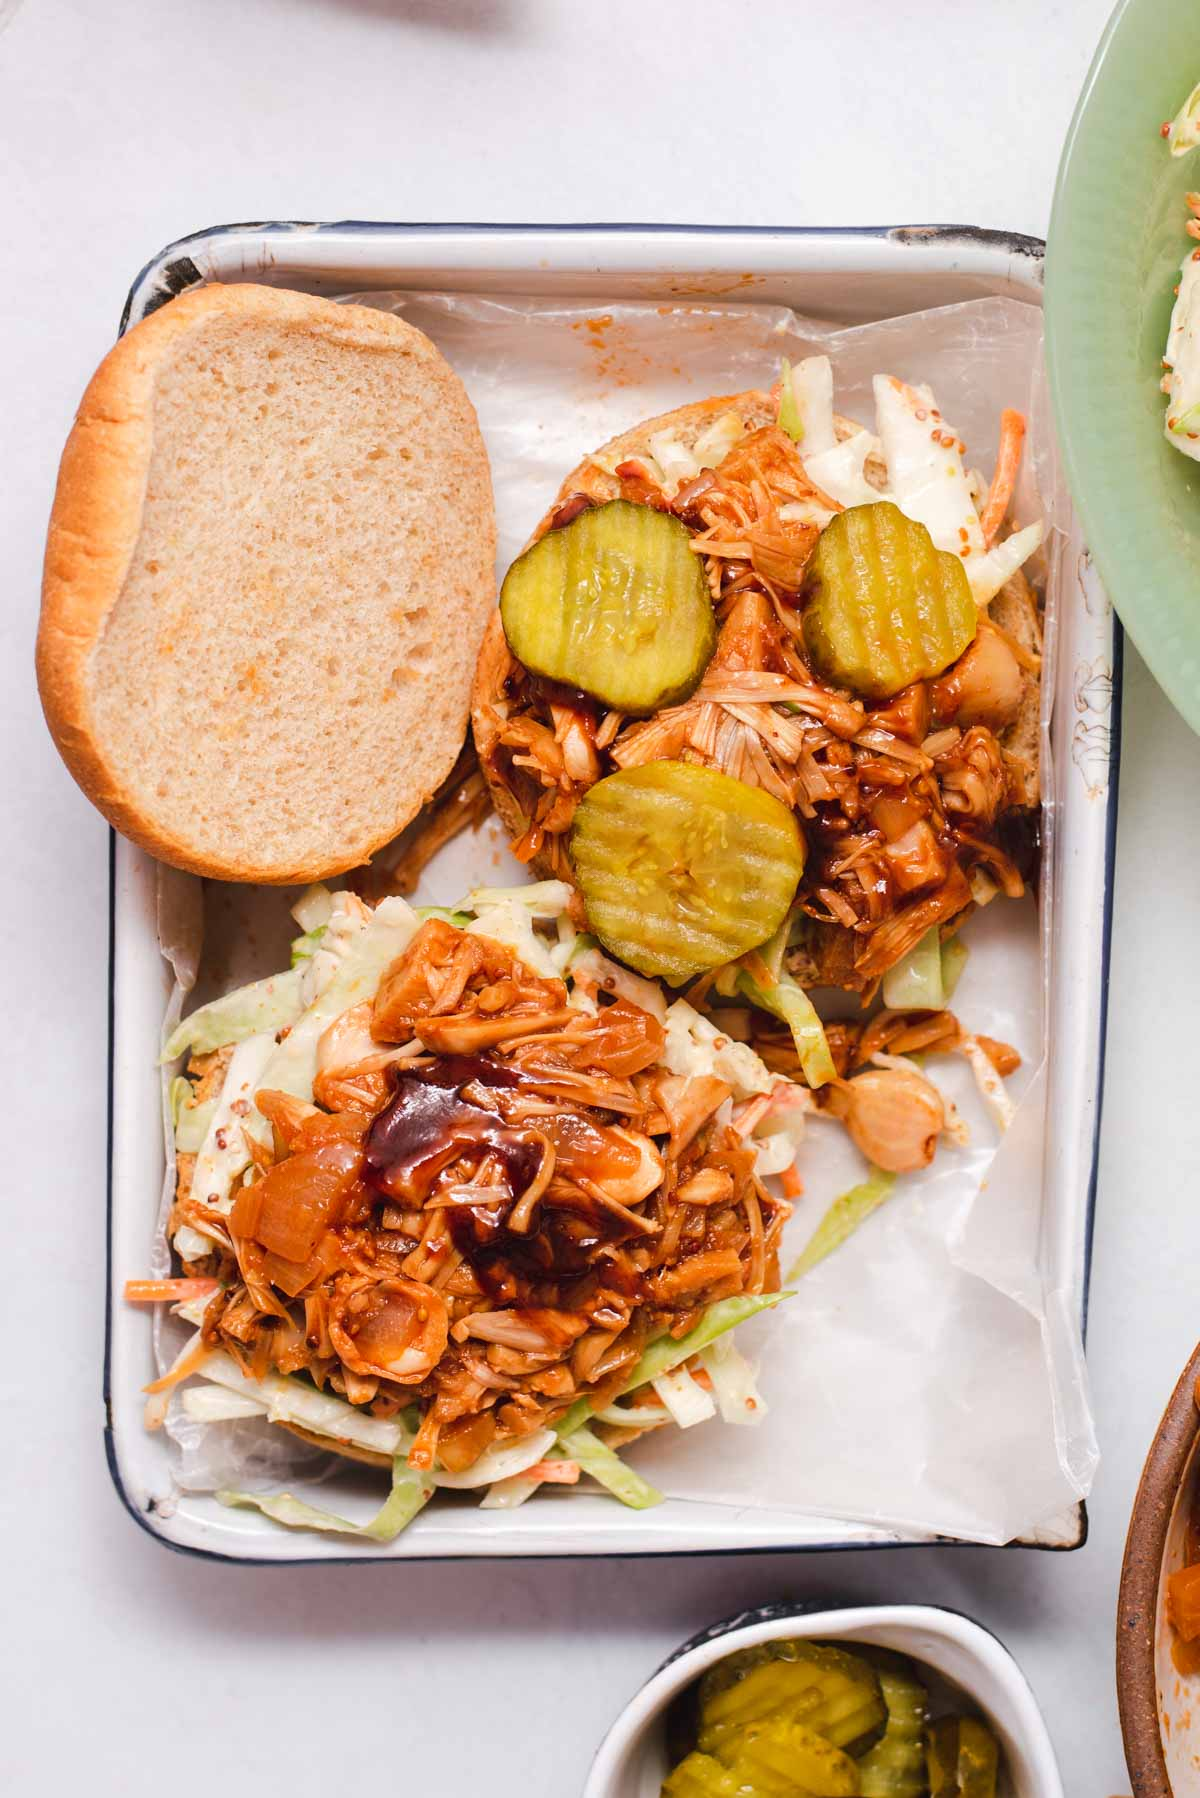 Two open faced sandwiches topped wiht coleslaw, jackfruit and pickles on a white tray